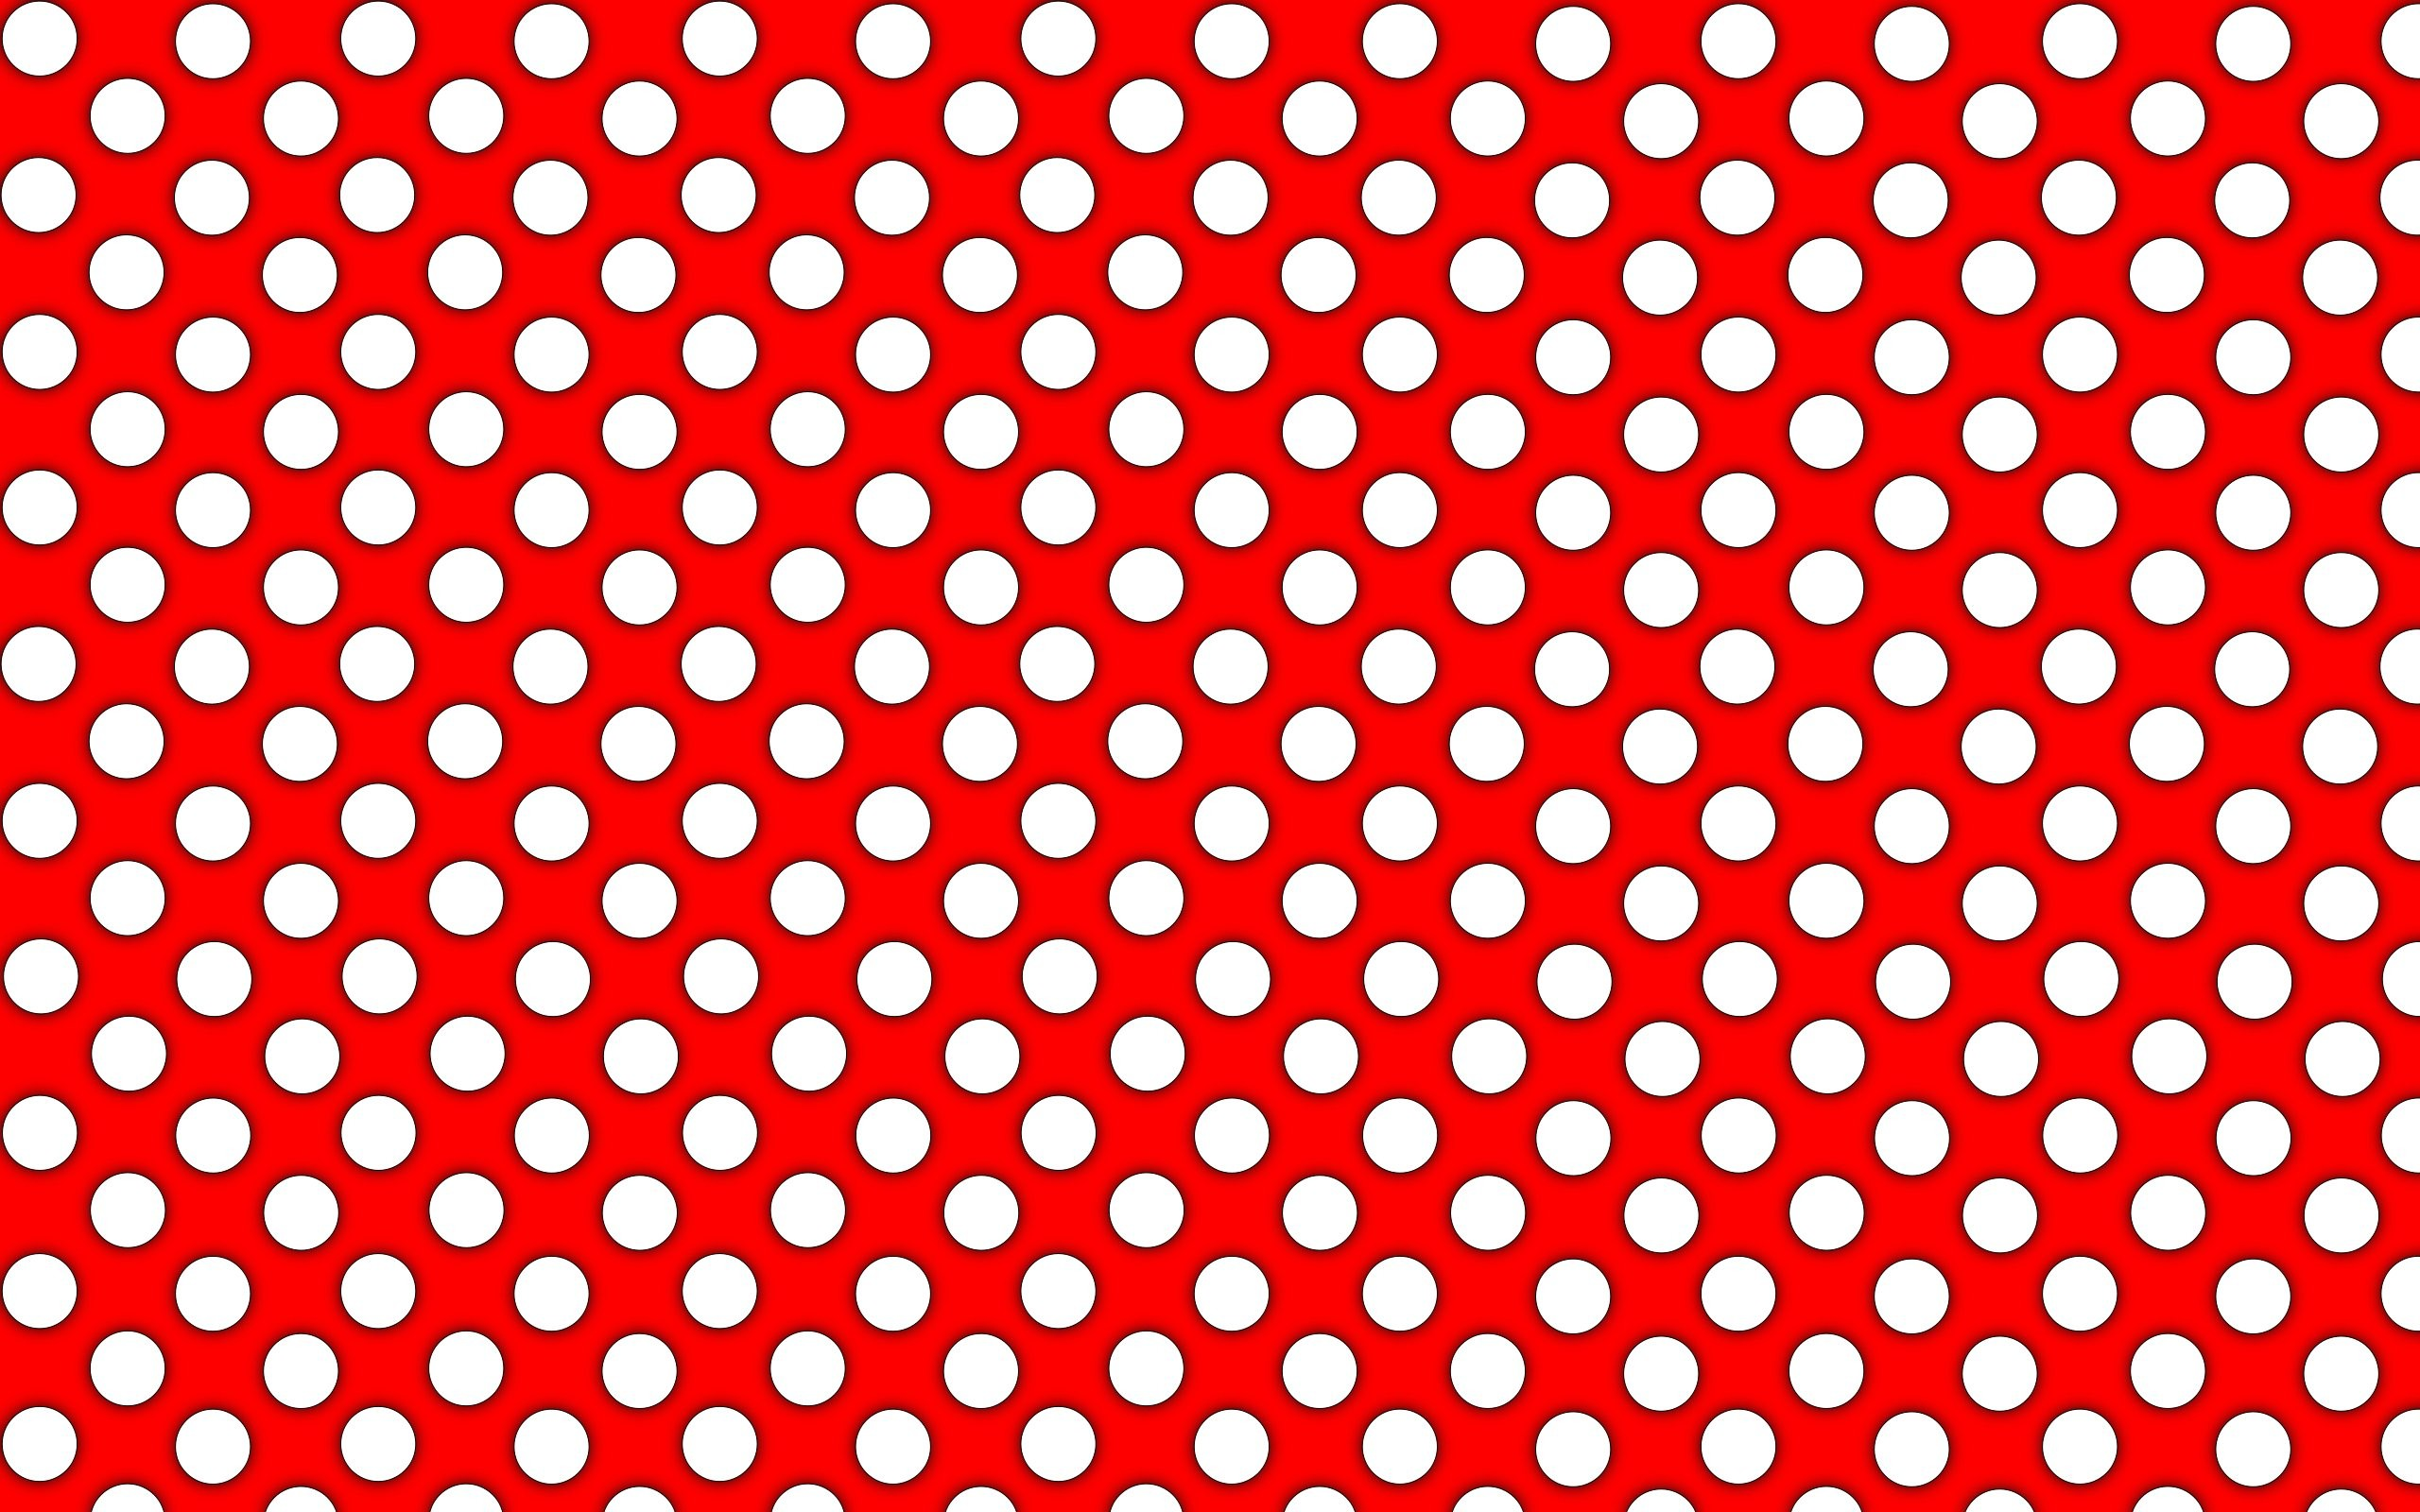 hd polka dot wallpaper 54 images